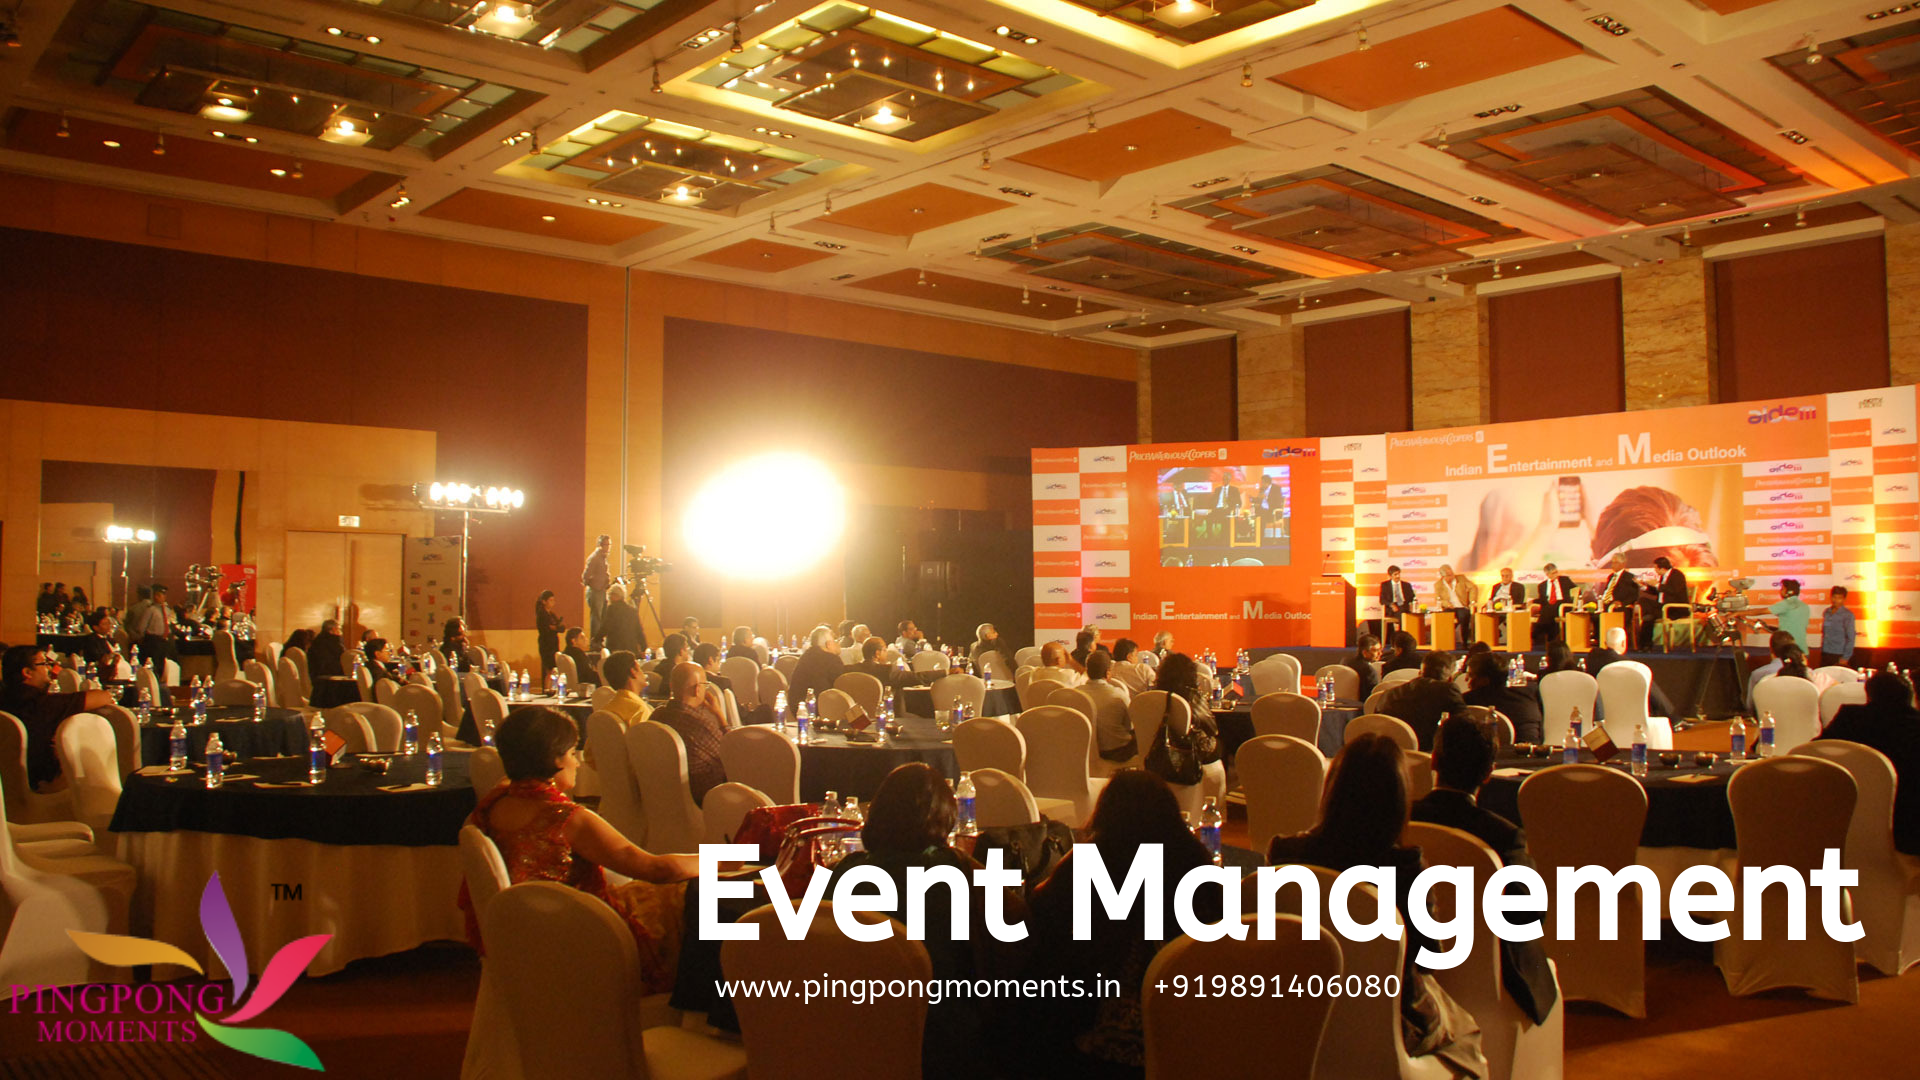 Pingpong Moments Is A Full Service Event Management Company In Gurugram We Cater All Type Of Corporate Events Event Management Event Management Company Event